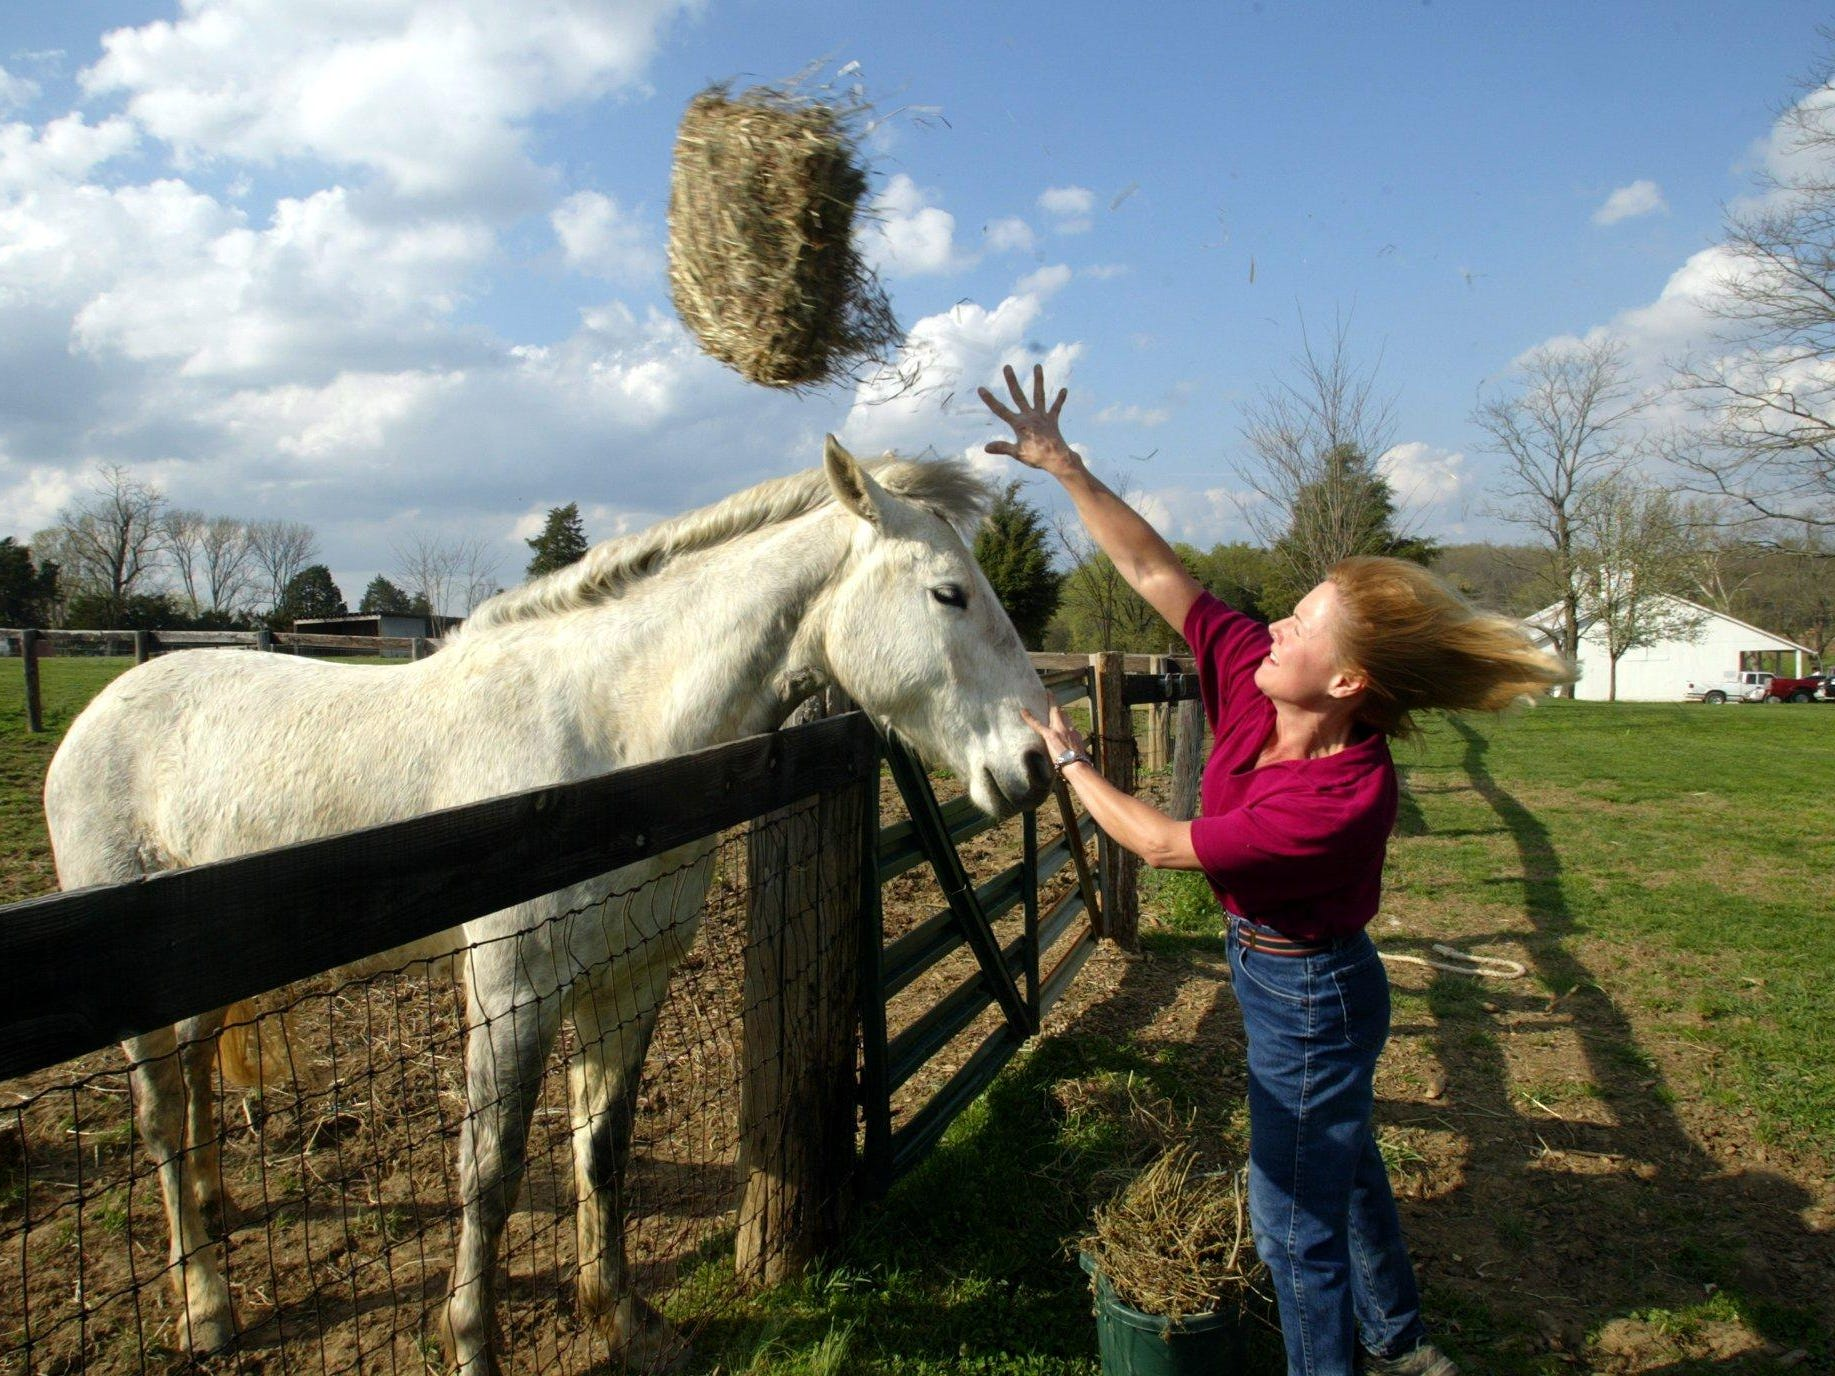 Linda Kelly throws some alfafa hay out into the pasture as Edison, a mustang adopted by Currey Ingram Academy, comes up to greet her in 2003.